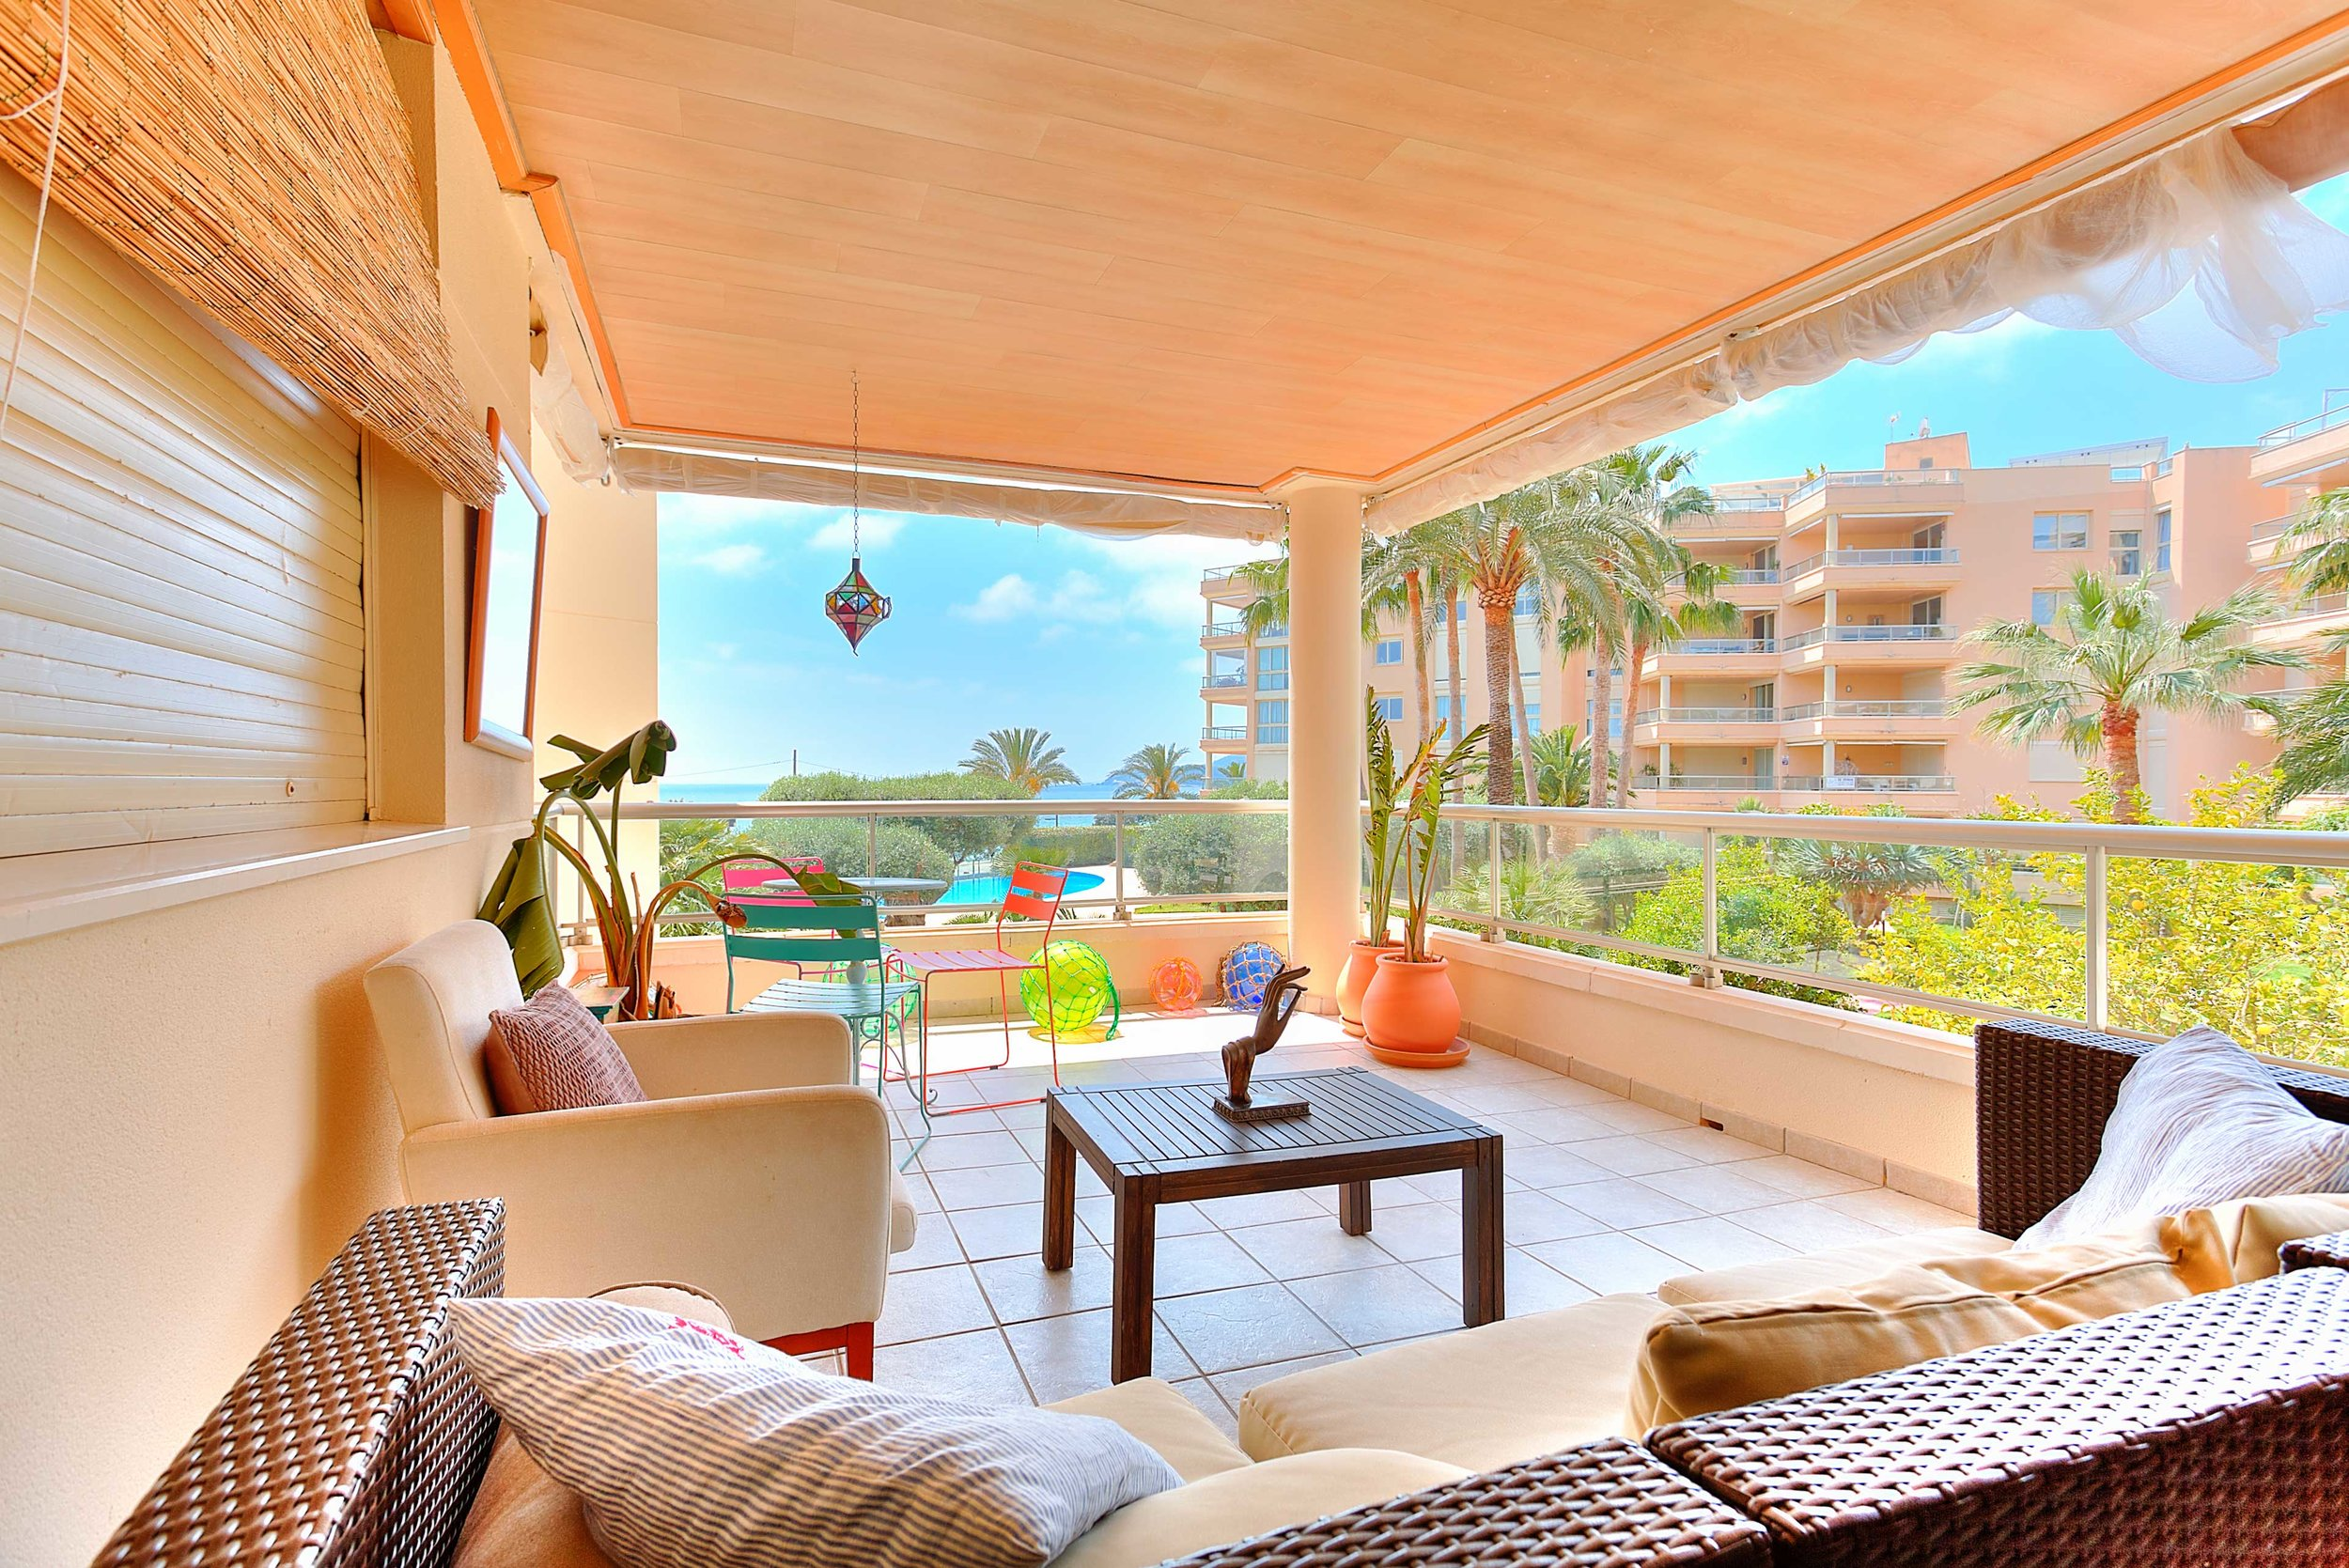 Bossa Beach Lirio - €22,500 for May To October3 bedroom, 2 bathroom Playa d'en Bossa apartment with partial sea views